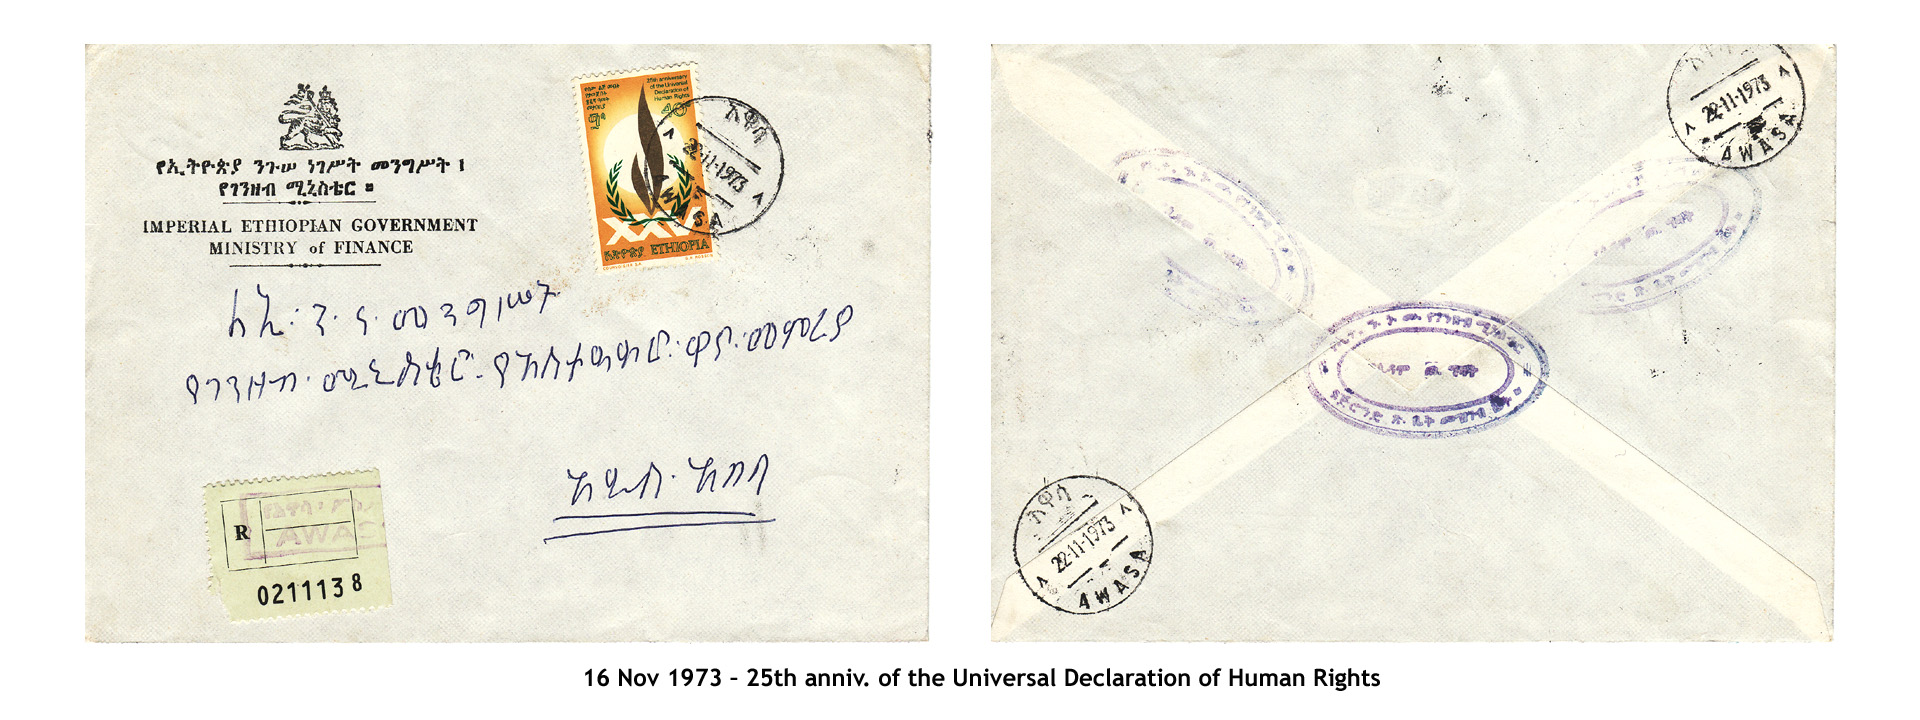 19731116 - 25th anniv. of the Universal Declaration of Human Rights